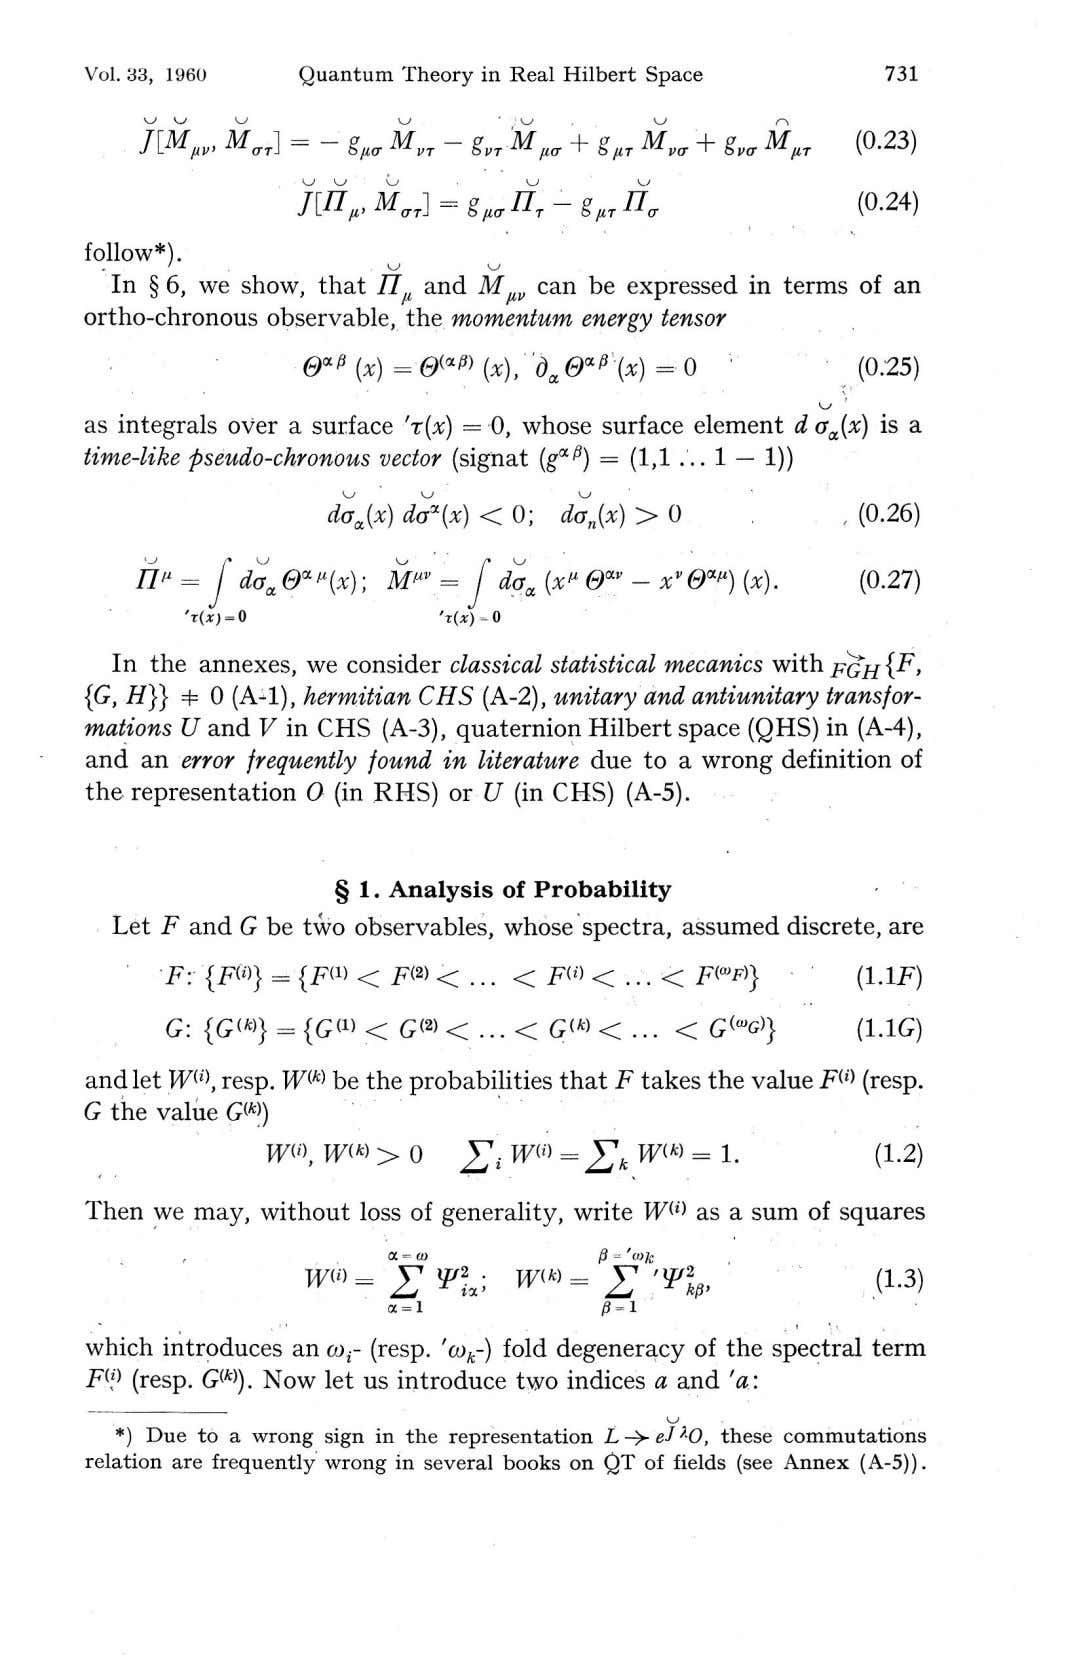 Vol. 33, 1960 Quantum Theory in Real Hilbert Space 731 XV MaT\ (0.23) - g/OT